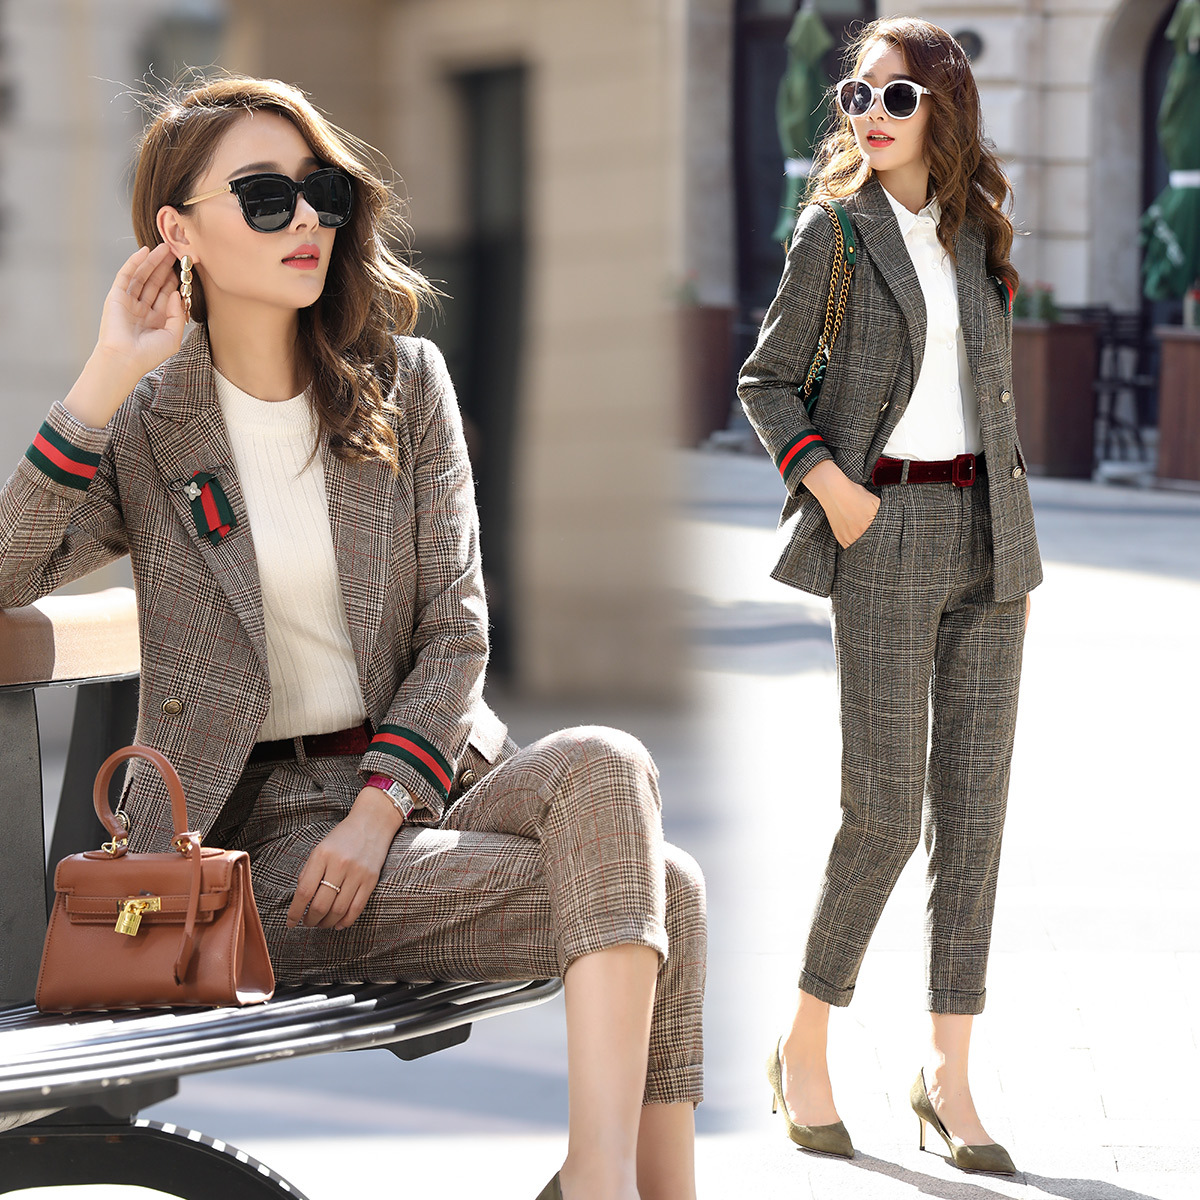 European Goods Spring Clothing British Style Plaid Small Suit WOMEN'S Suit Fashionable Western Style Trousers Suit Business Suit